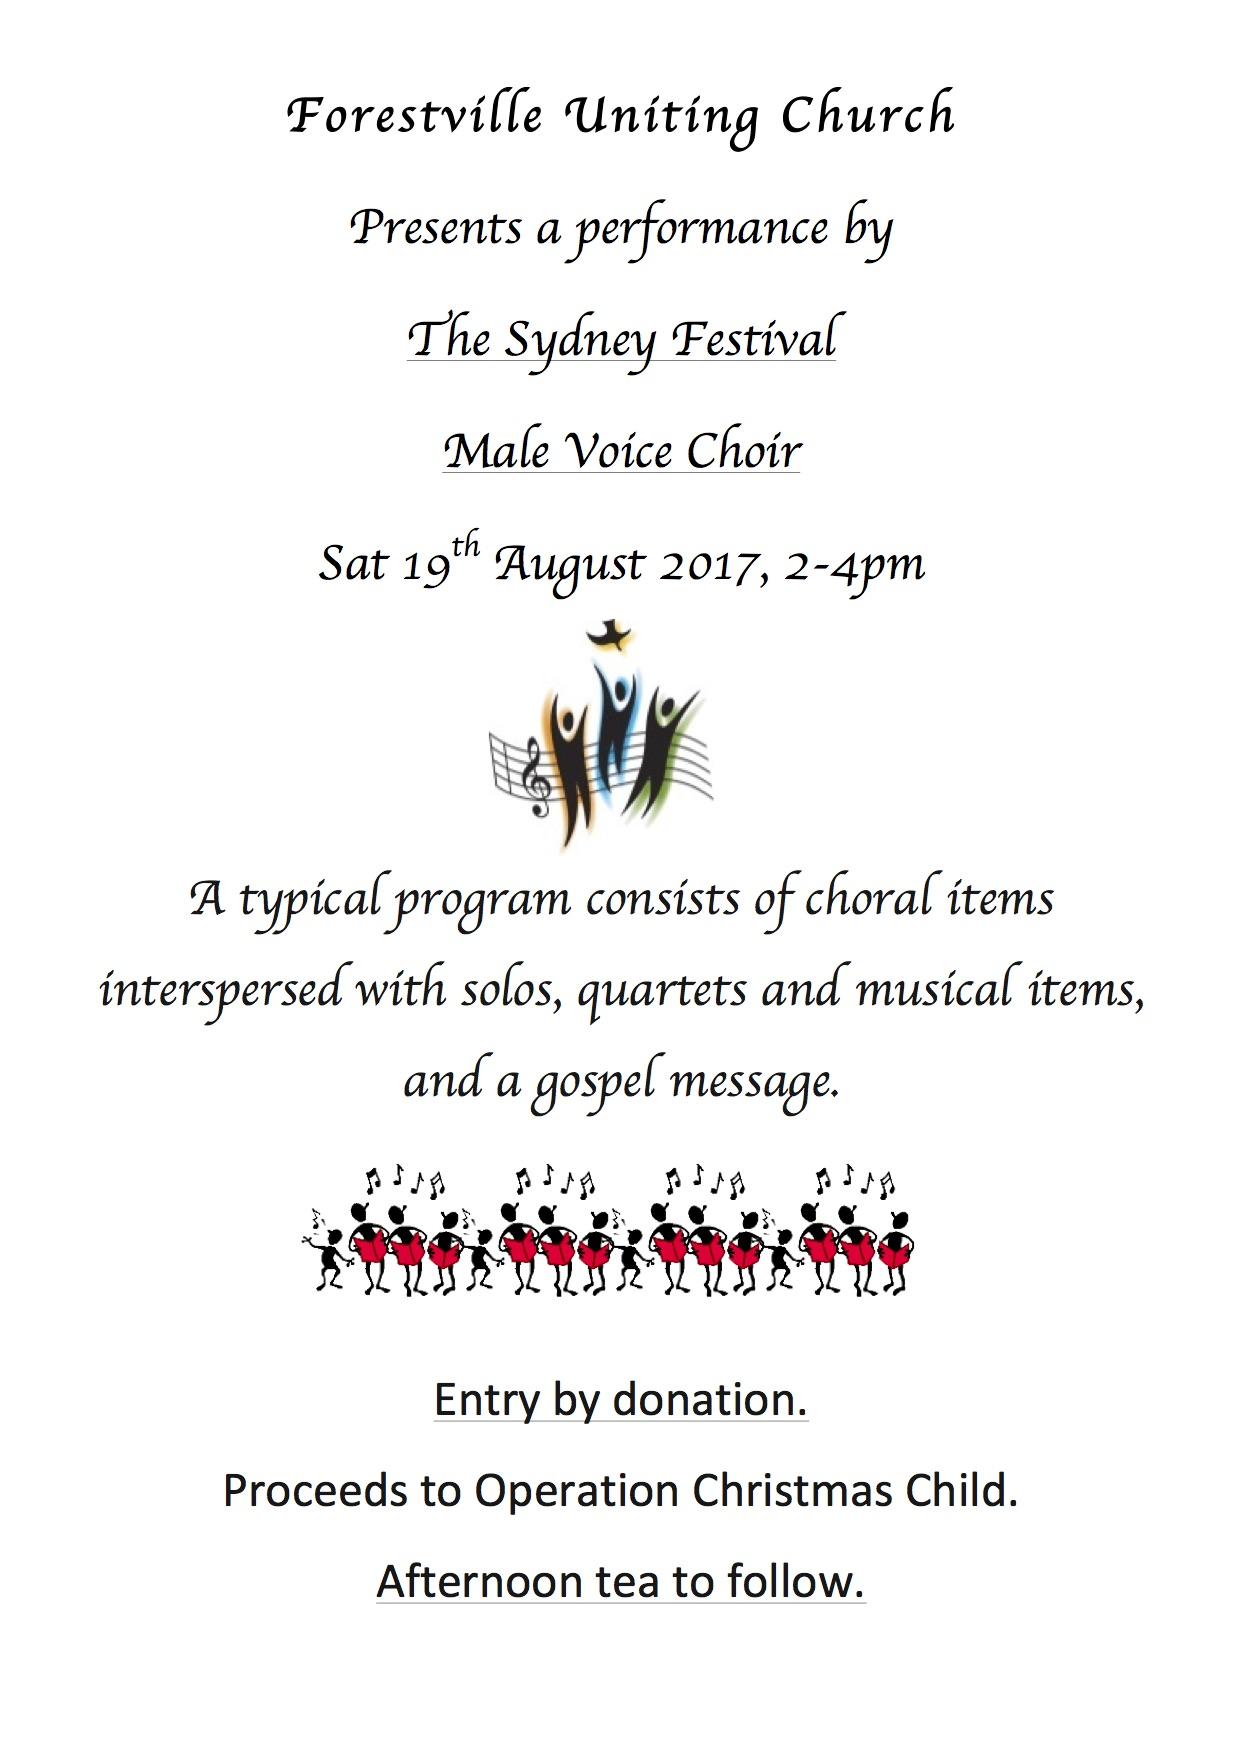 sydney male voice choir